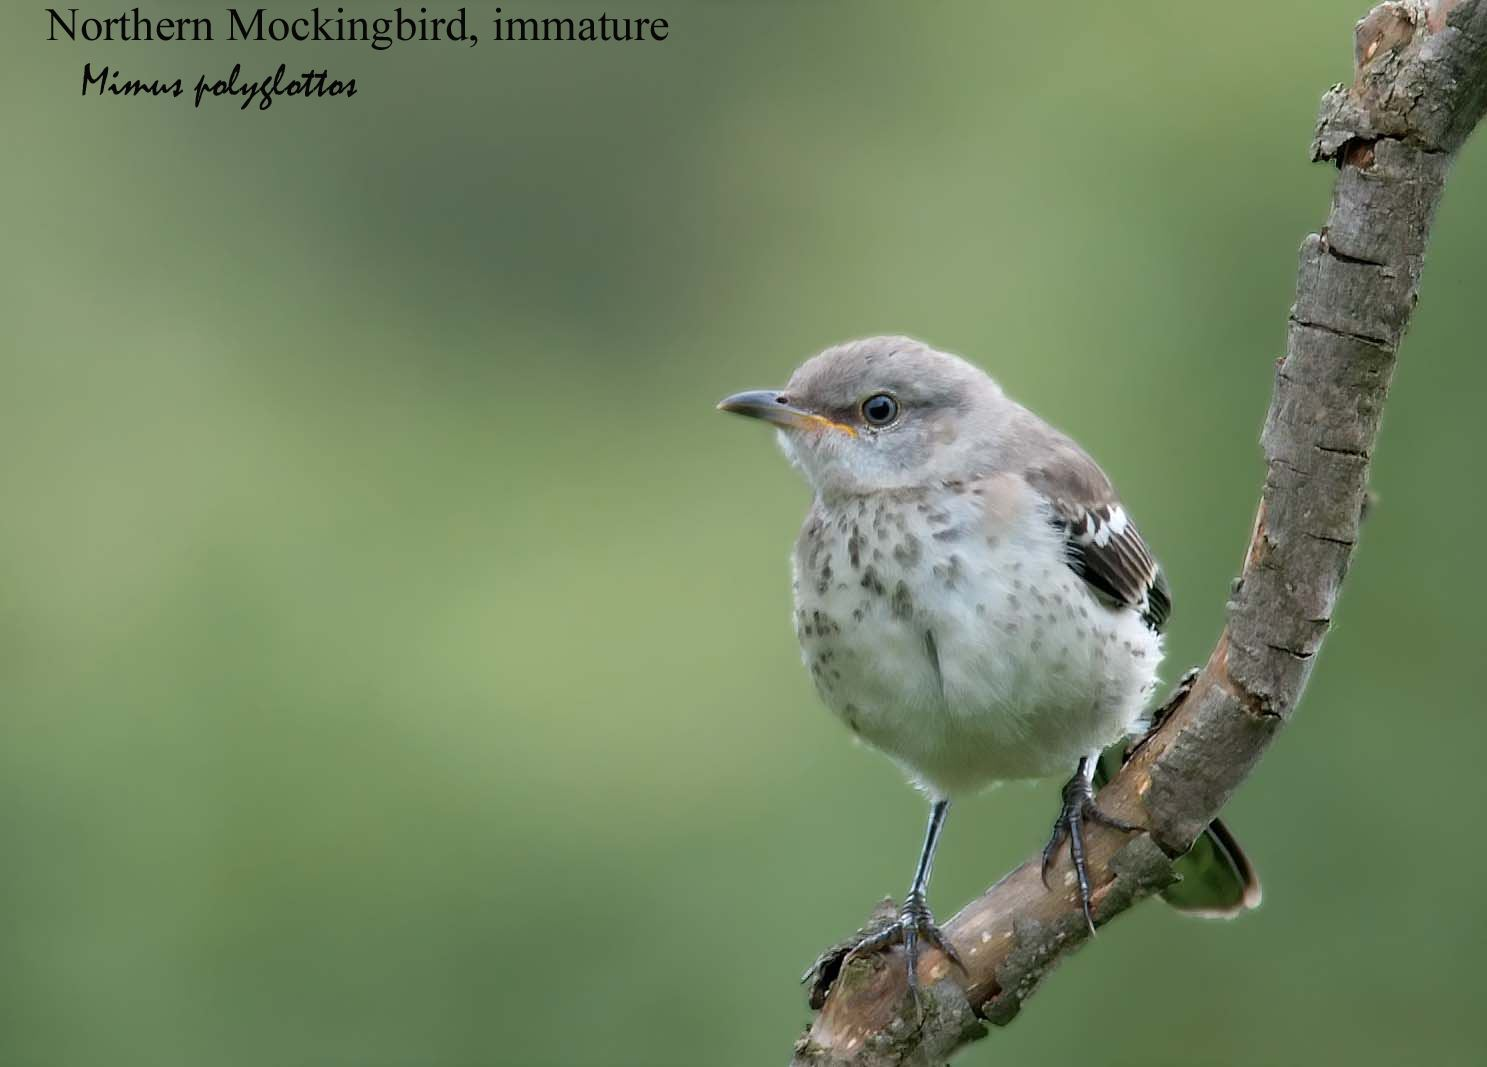 Northern Mockingbird - 1